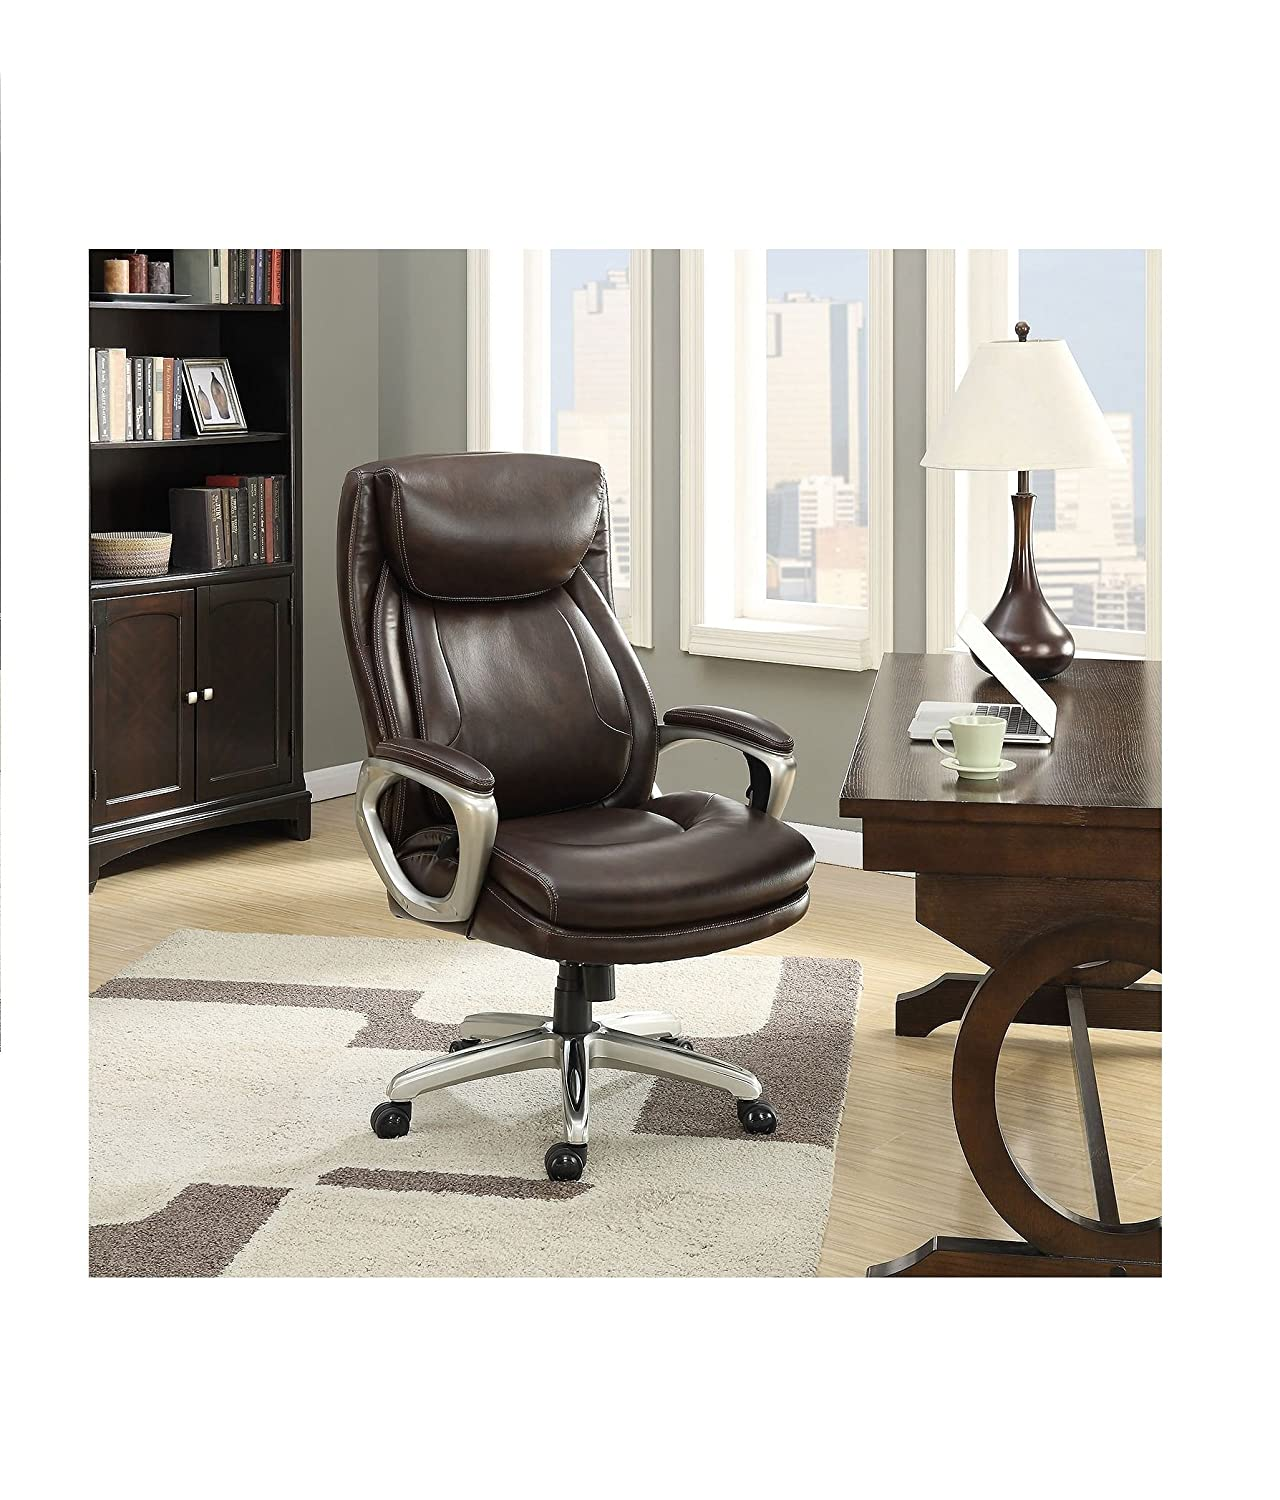 Amazon La Z Boy Connelly Big & Tall Executive Chair Brown